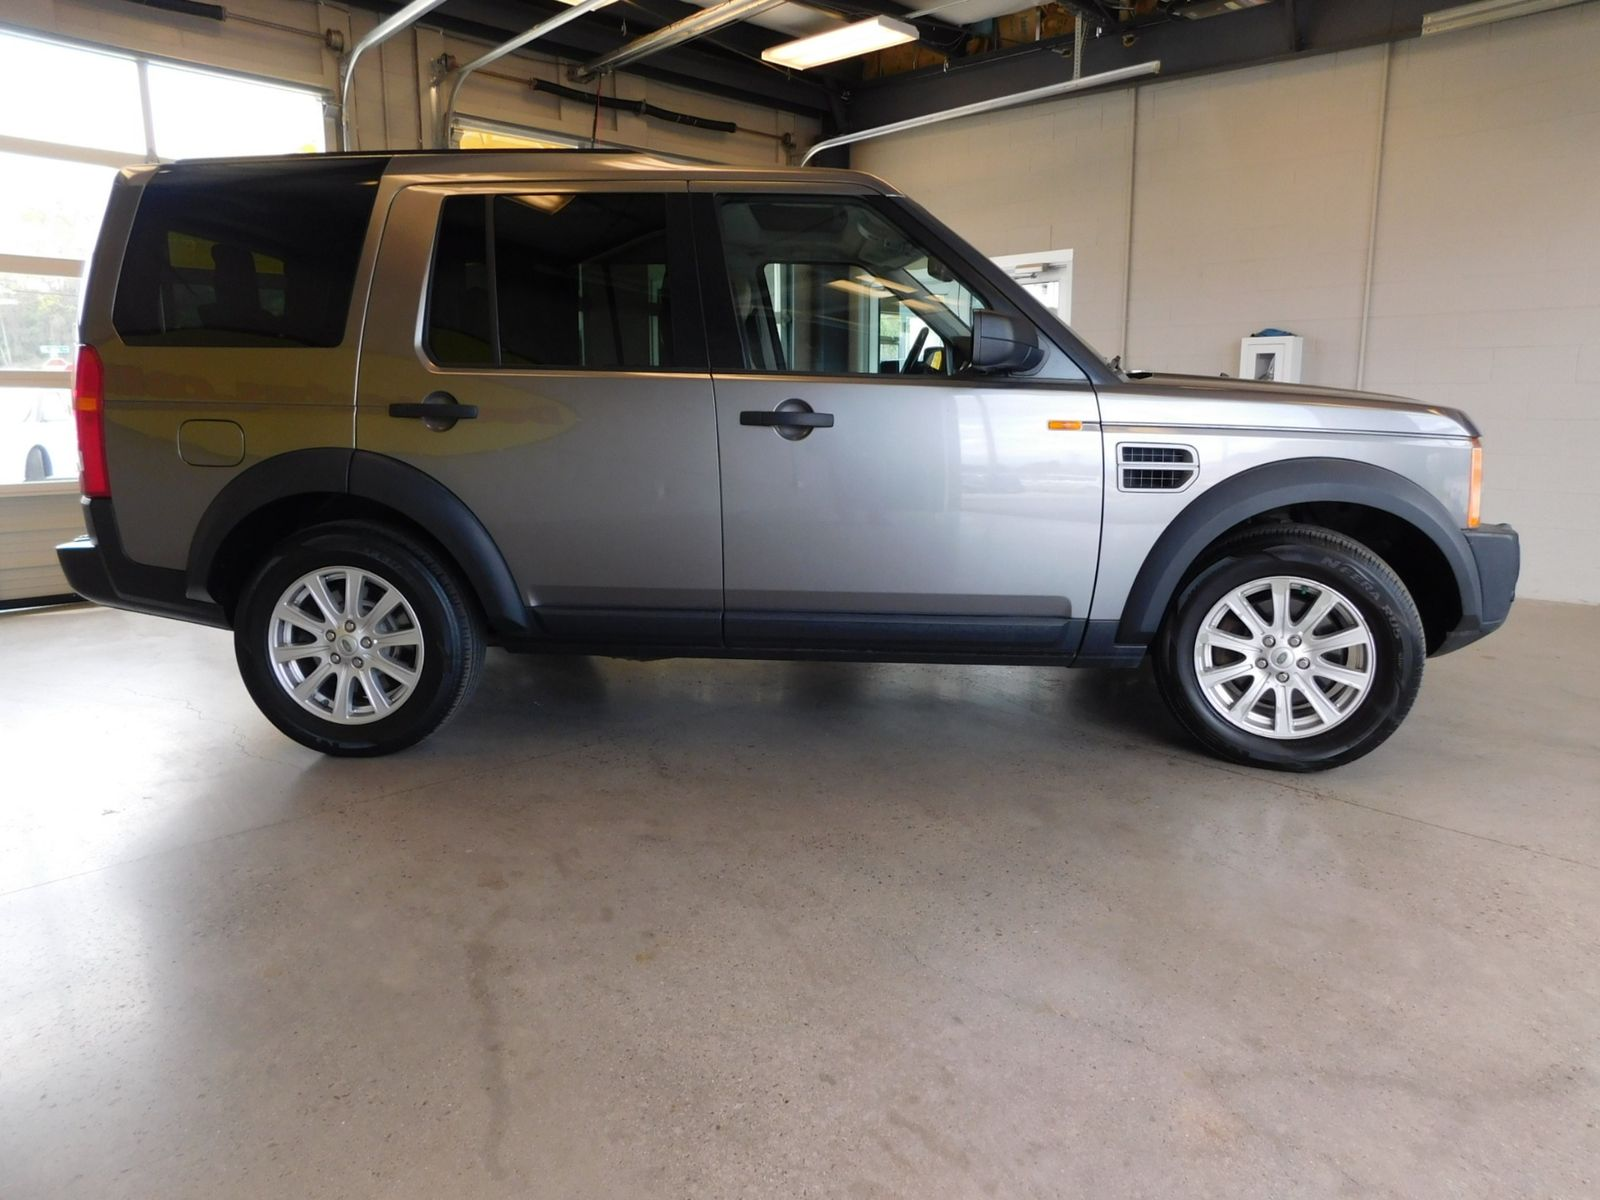 land fro page with landrover and ideas rims part tire wheels rover road off inch all tires terrain